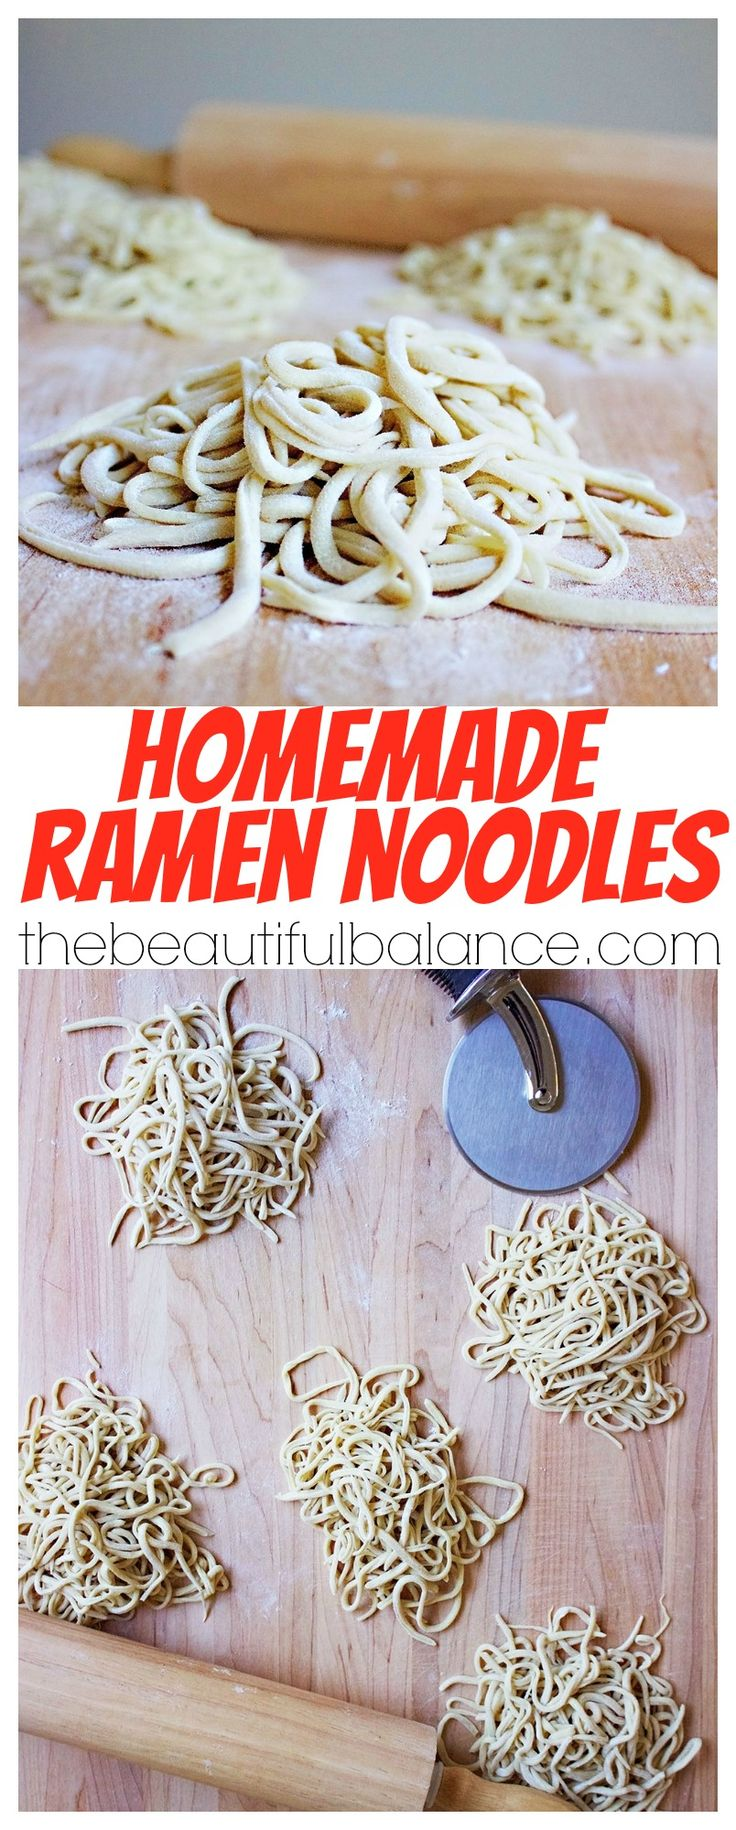 Using a staple ingredient that you are guaranteed to have on hand, homemade ramen noodles are extremely easy, fast, and delicious to make at home! | The Beautiful Balance